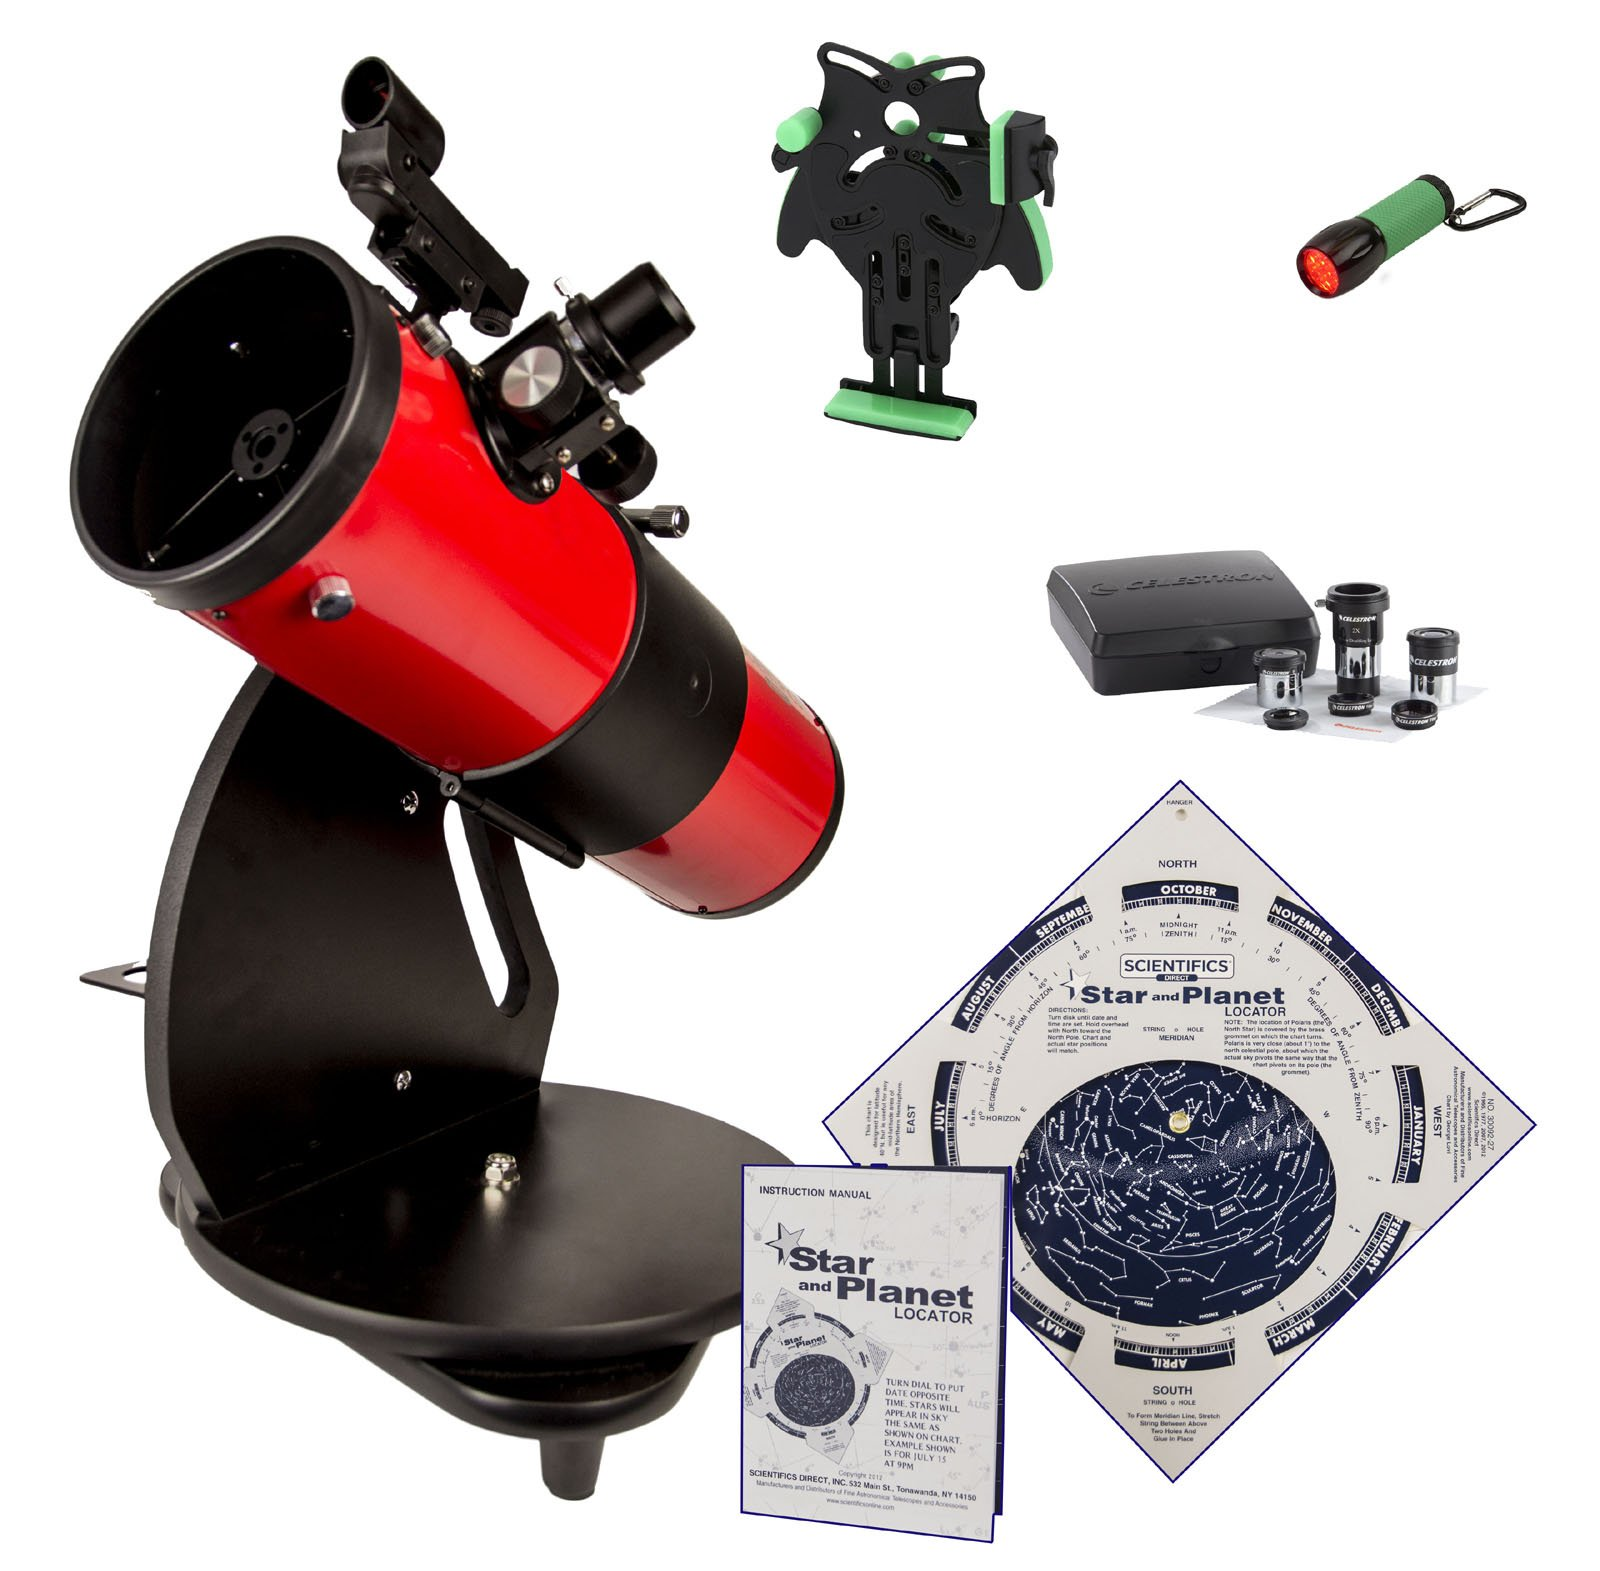 Astroscan Millennium Dobsonian Reflector Portable Telescope with Azimuth Mount, Star and Planet Locator - Deluxe Kit by Scientifics Direct